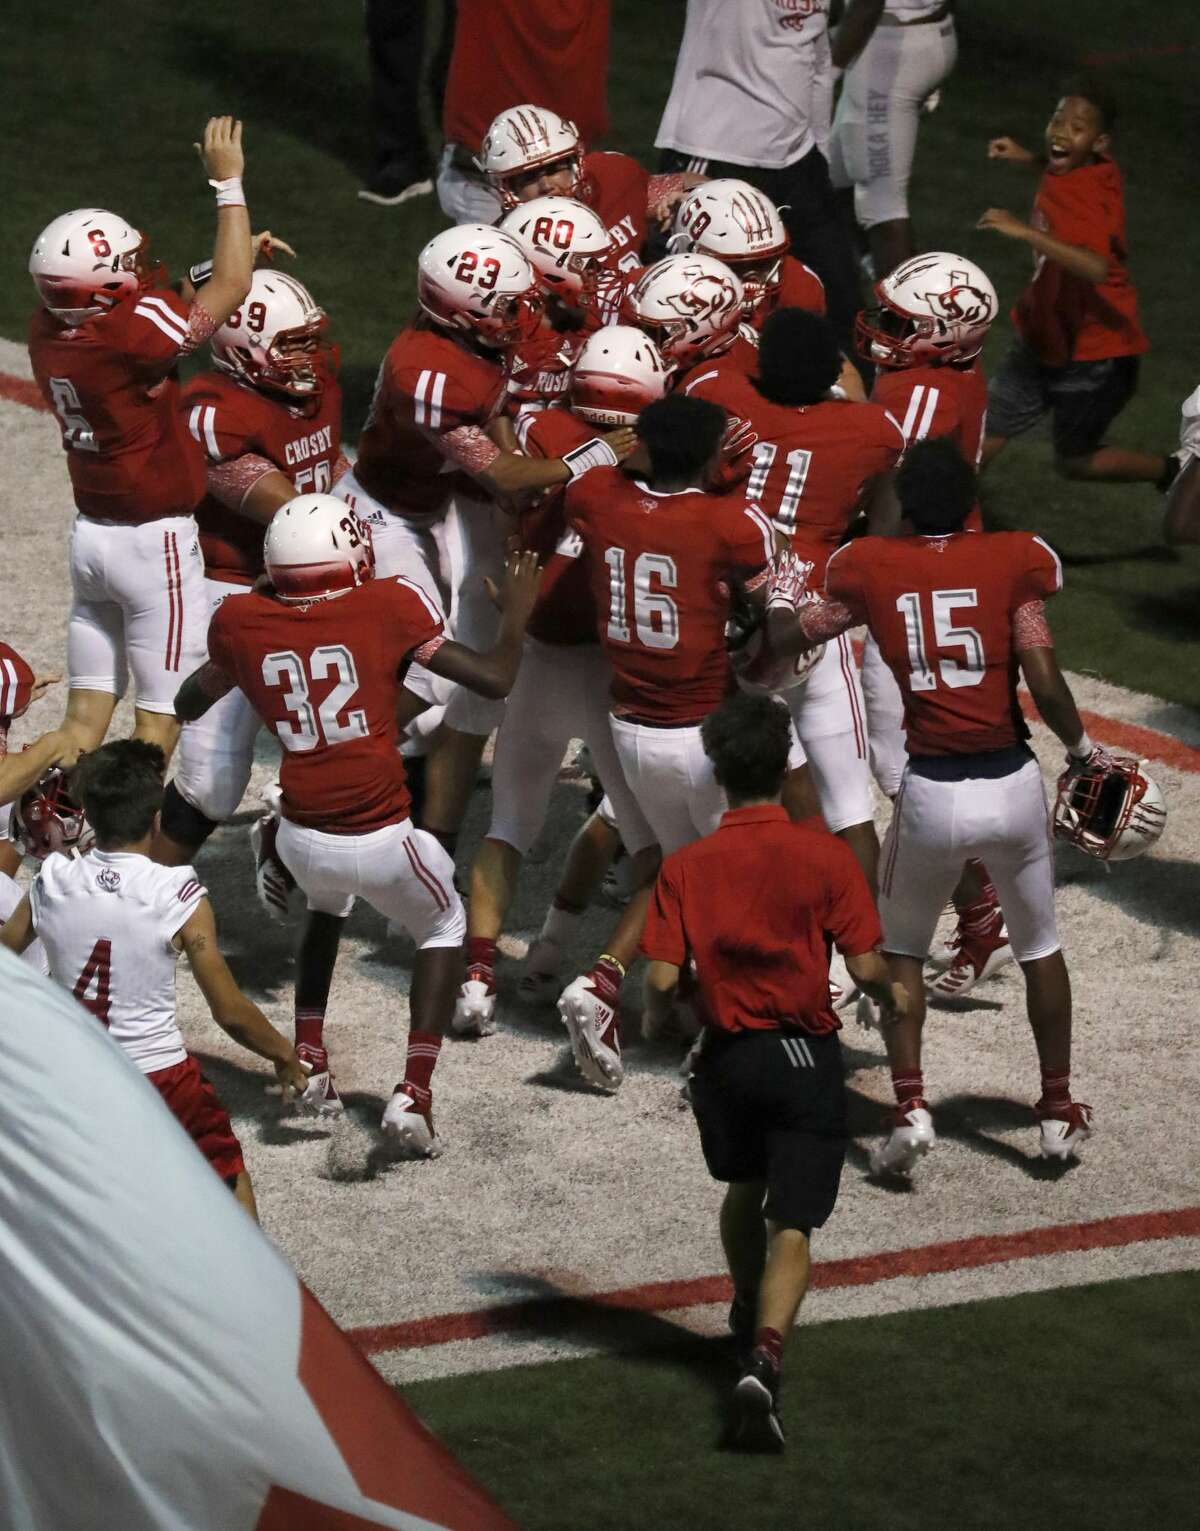 Crosby players storm the field after a last second touchdown to win 49-47 over Manvel during a high school football game at Cougar Stadium between Manvel and Crosby High Schools, Friday, September 7, 2018, in Crosby.